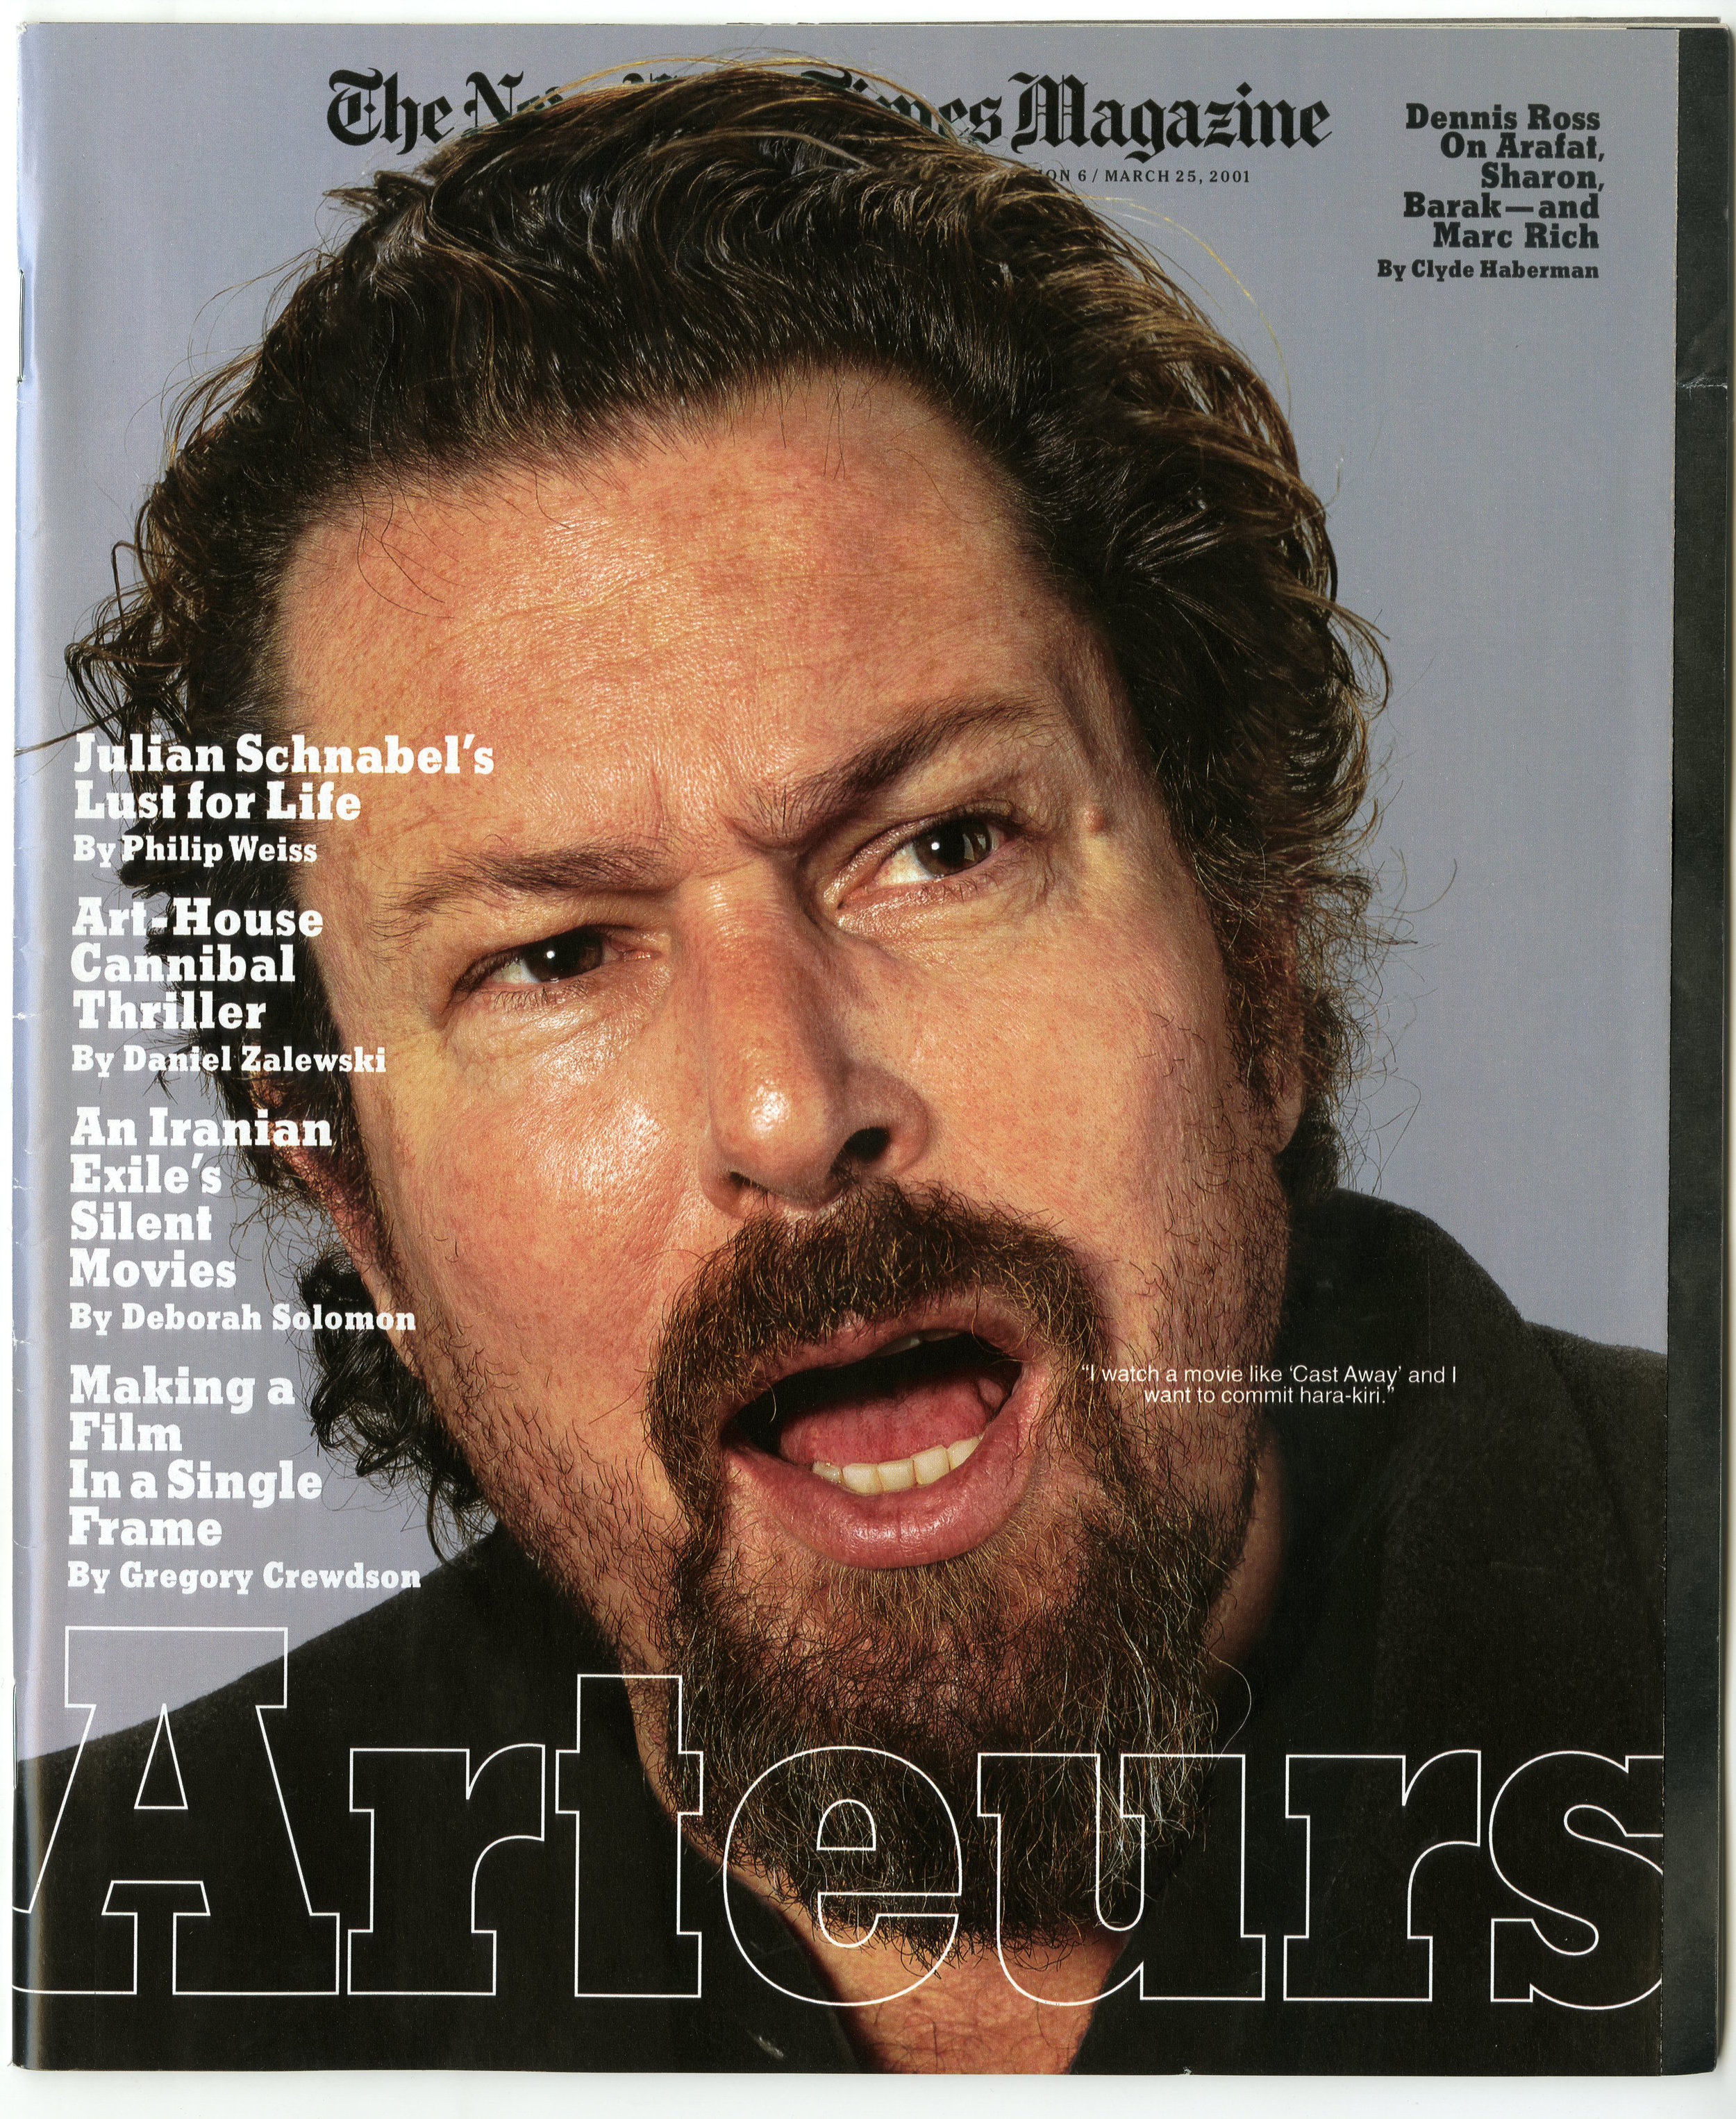 COVER.03.25.01.Auters Cover.jpg